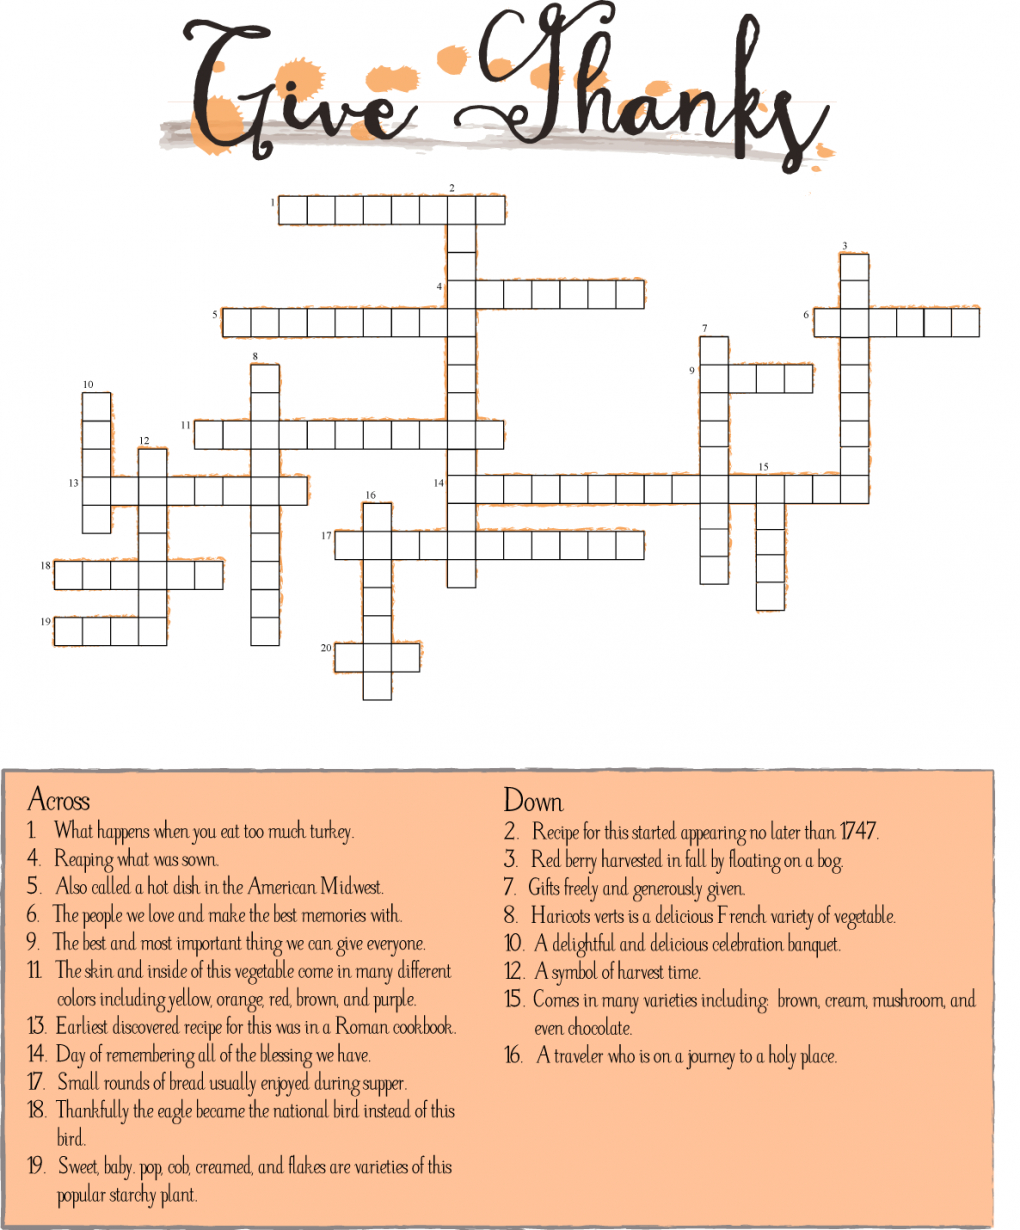 10 Superfun Thanksgiving Crossword Puzzles | Kittybabylove - Thanksgiving Crossword Puzzle Printable